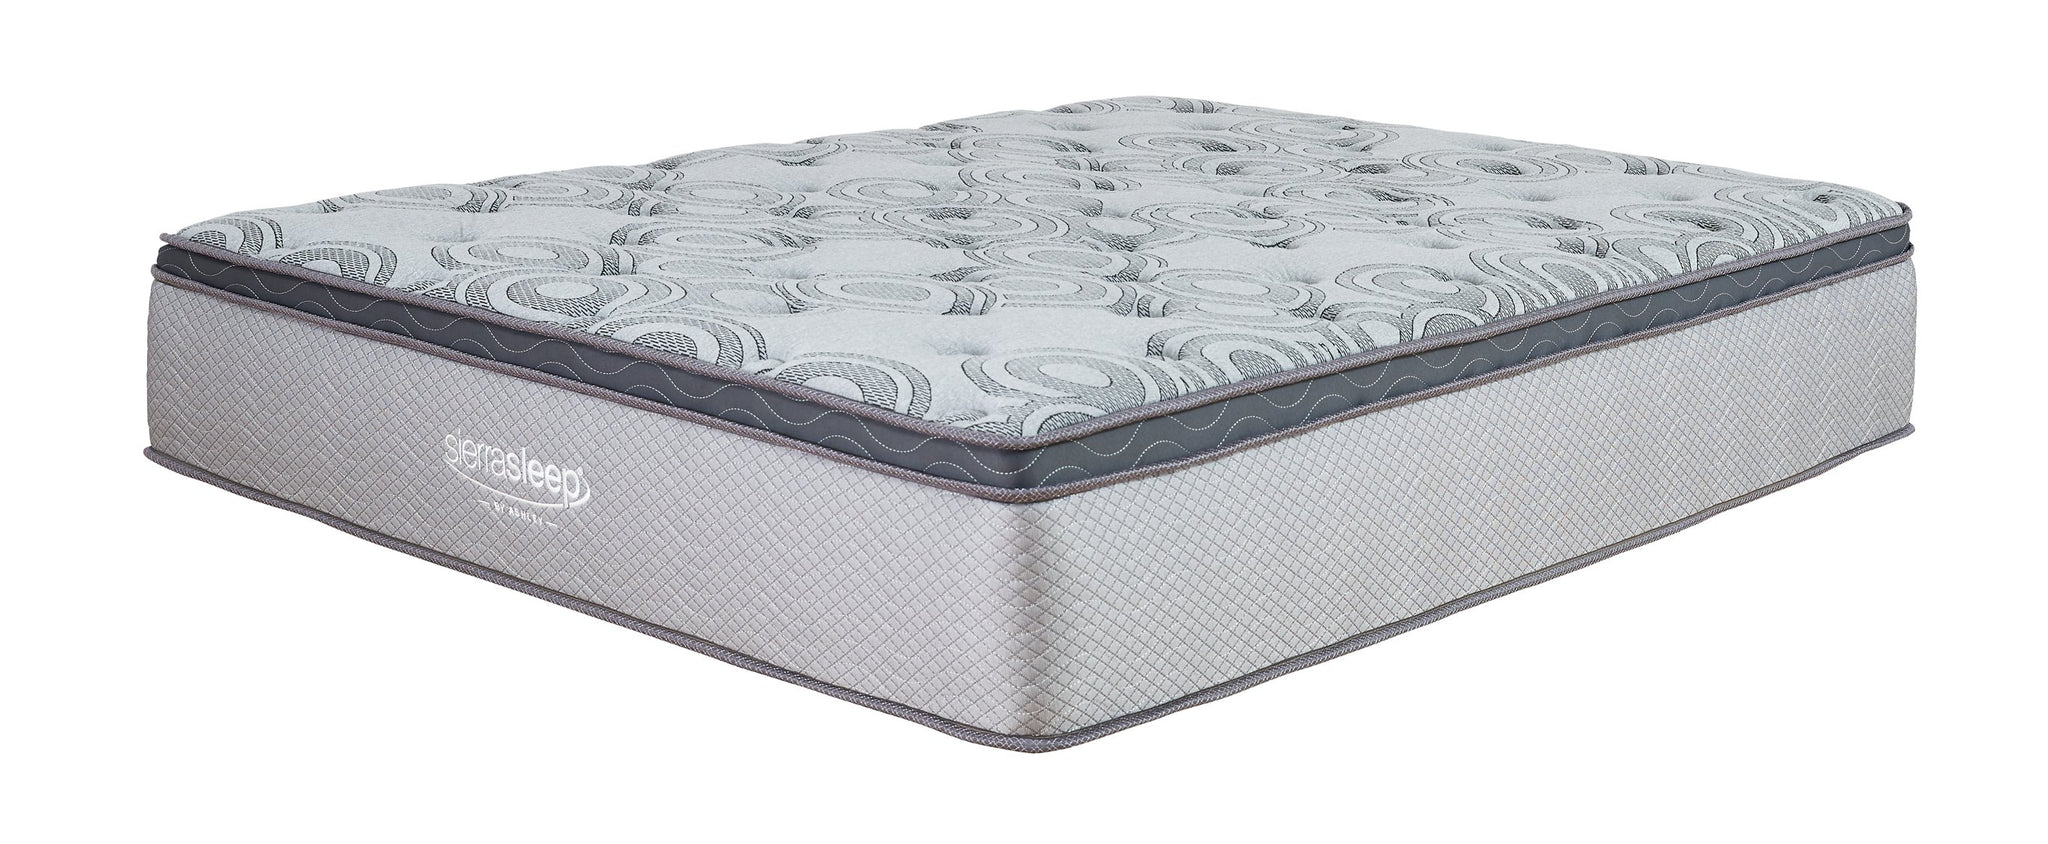 Augusta Sierra Sleep by Ashley Innerspring Mattress image